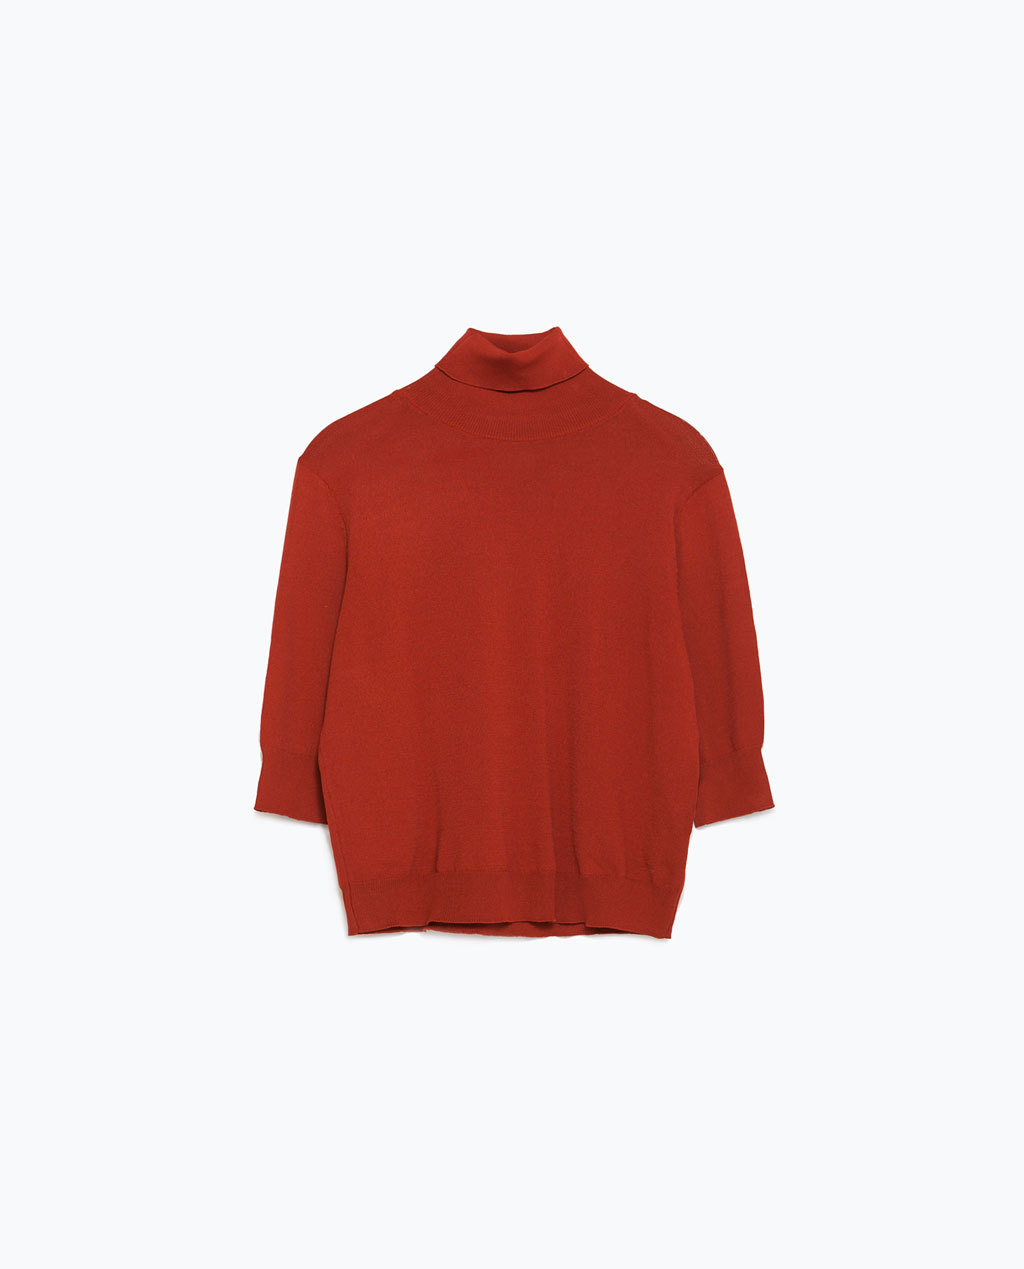 Cropped Sweater - pattern: plain; length: cropped; neckline: roll neck; style: standard; predominant colour: true red; occasions: casual, creative work; fit: standard fit; sleeve length: 3/4 length; sleeve style: standard; texture group: knits/crochet; pattern type: fabric; fibres: viscose/rayon - mix; season: a/w 2015; wardrobe: highlight